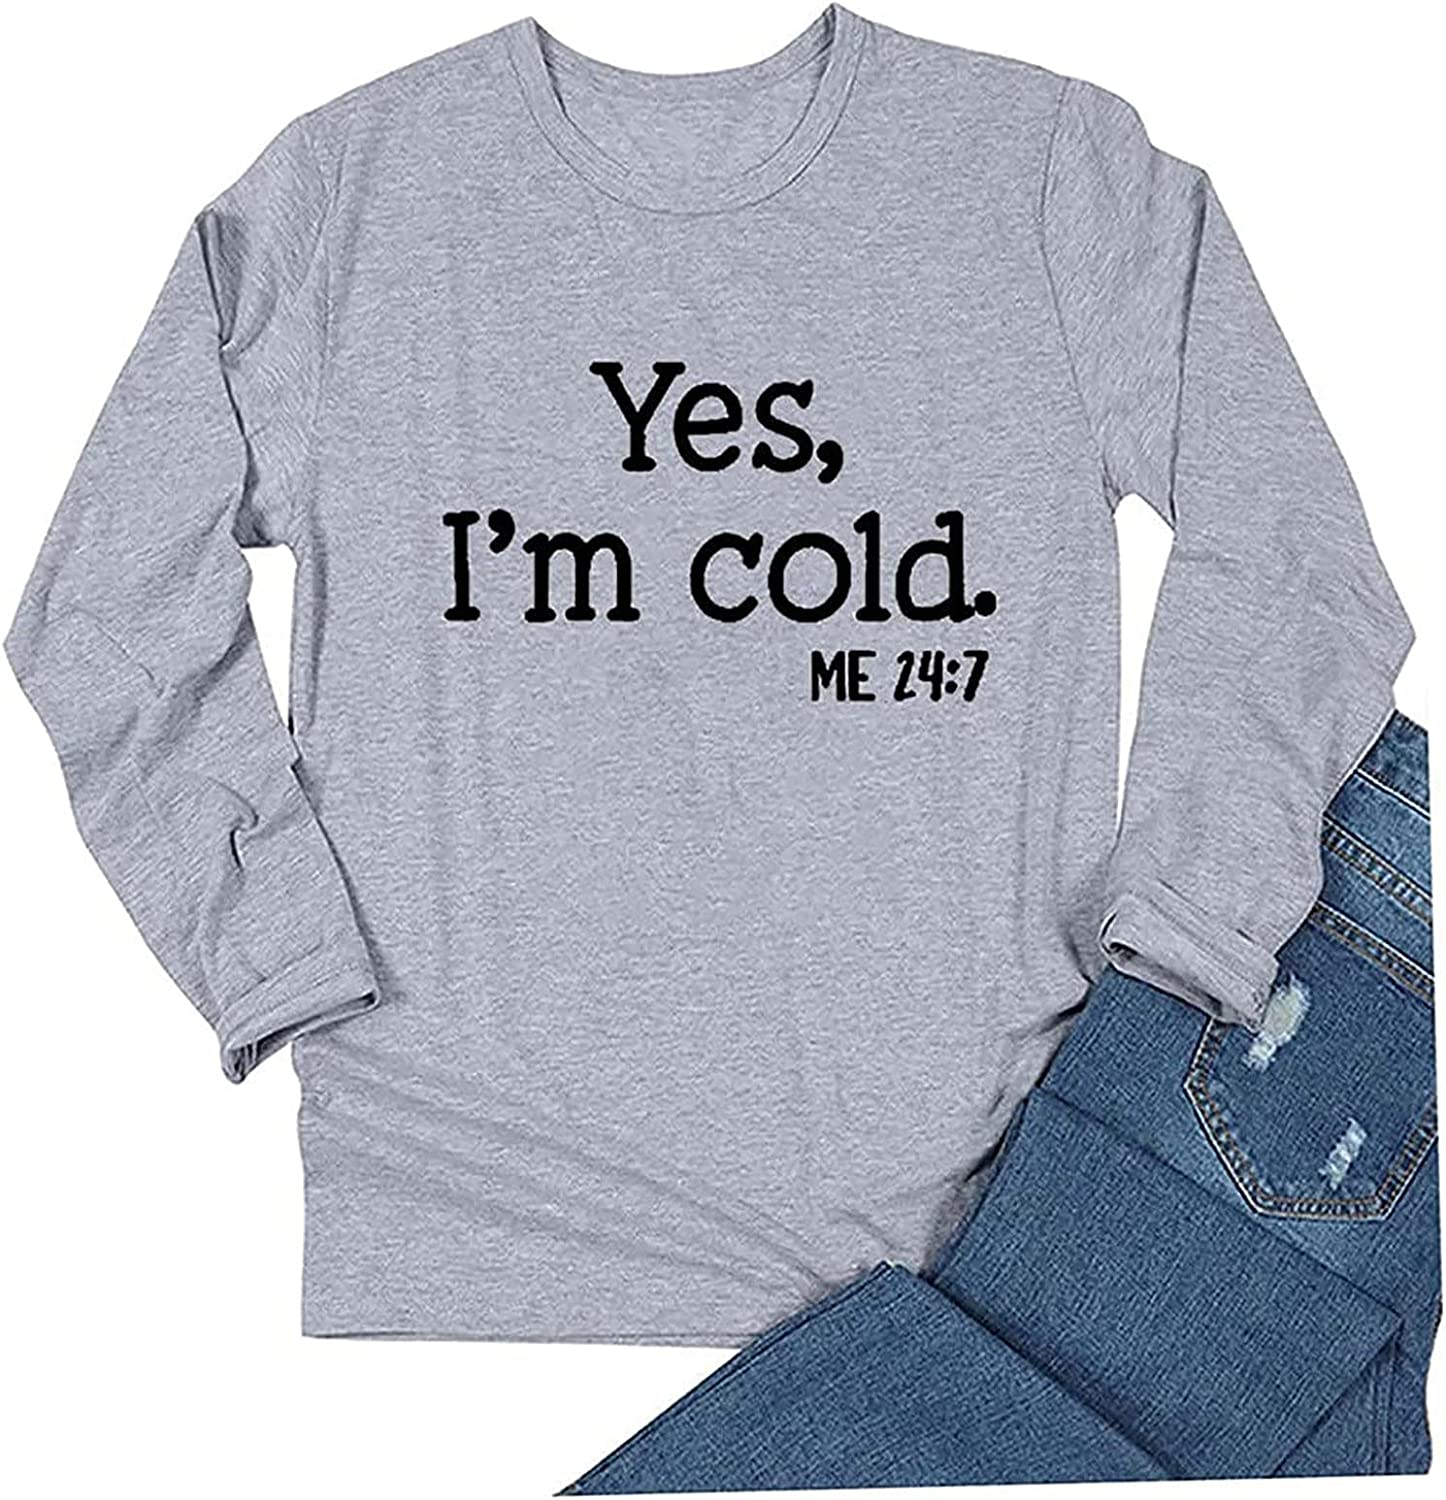 Yes I'm Cold Long Sleeve Shirts for Womens Fall Fashion Casual Round Neck Tee Letter Printed Blouse Tops Sweatshirts